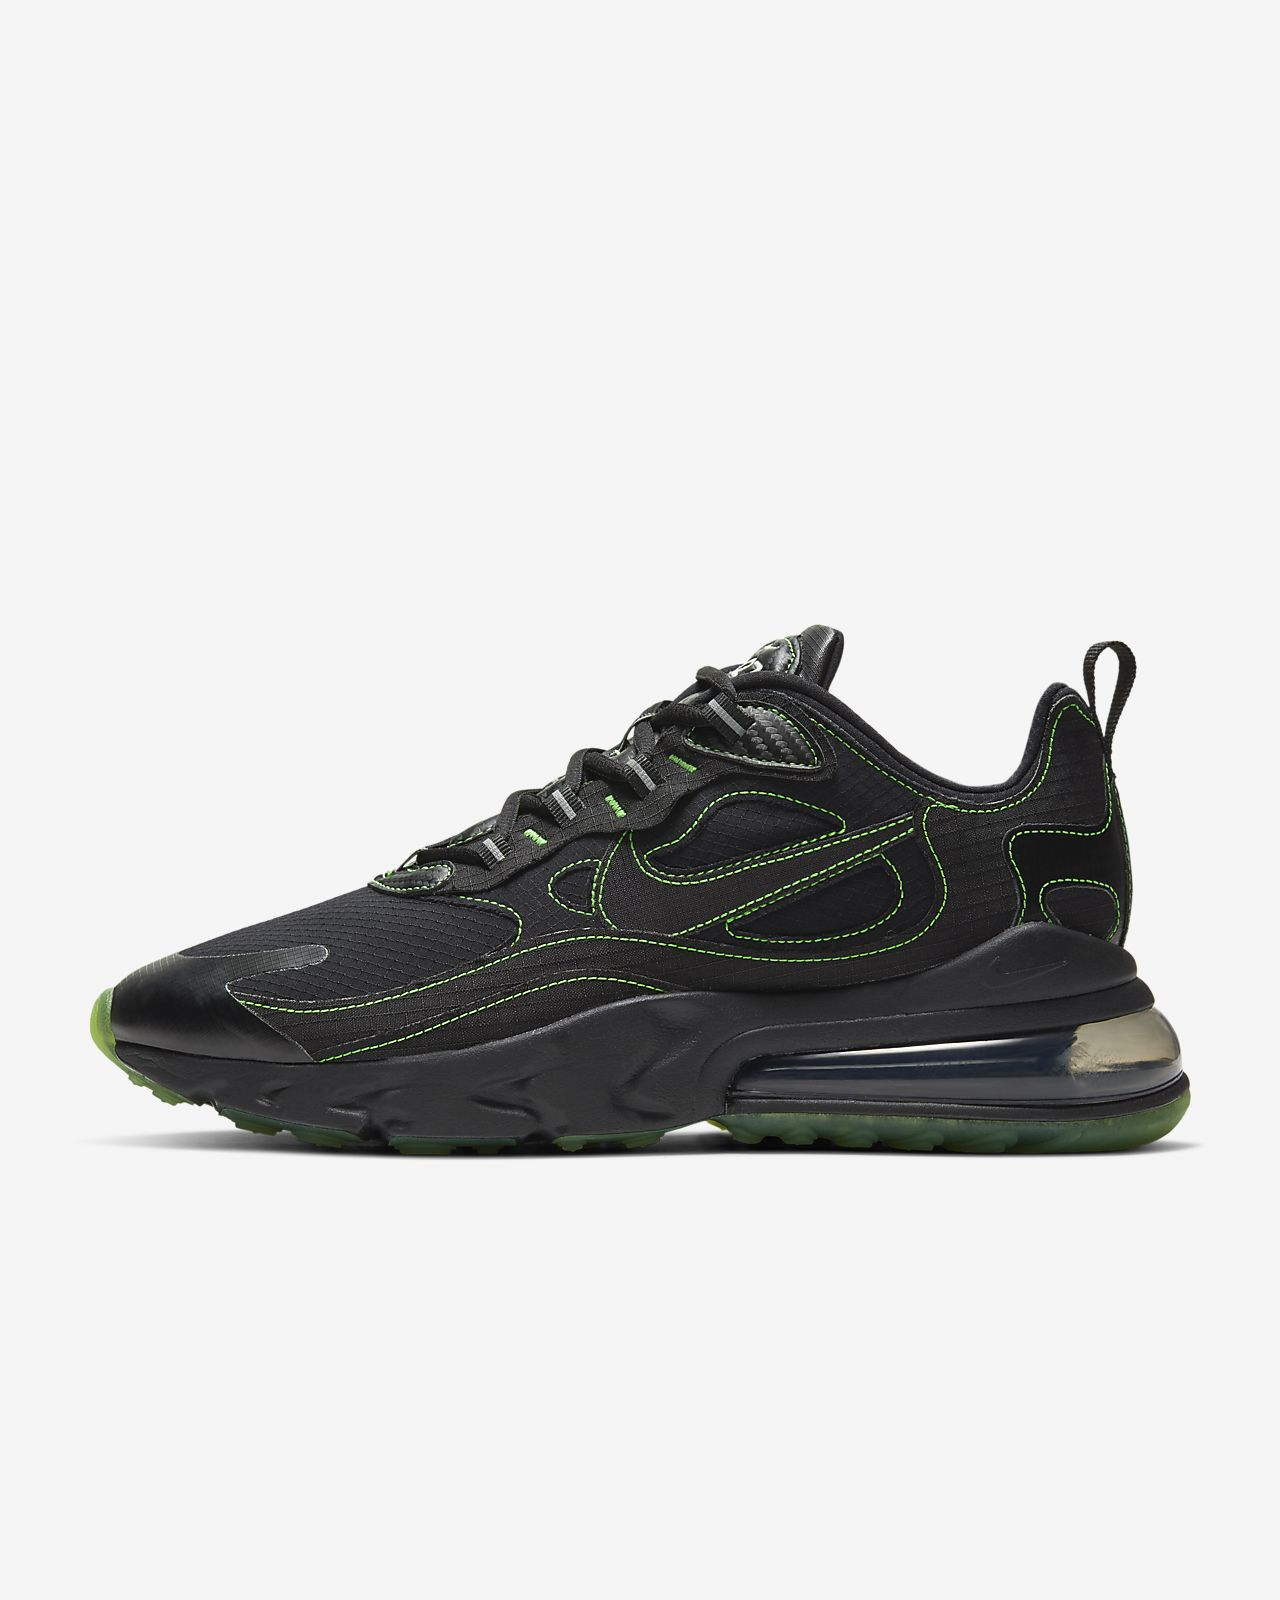 Chaussure Nike Air Max 270 Special Edition